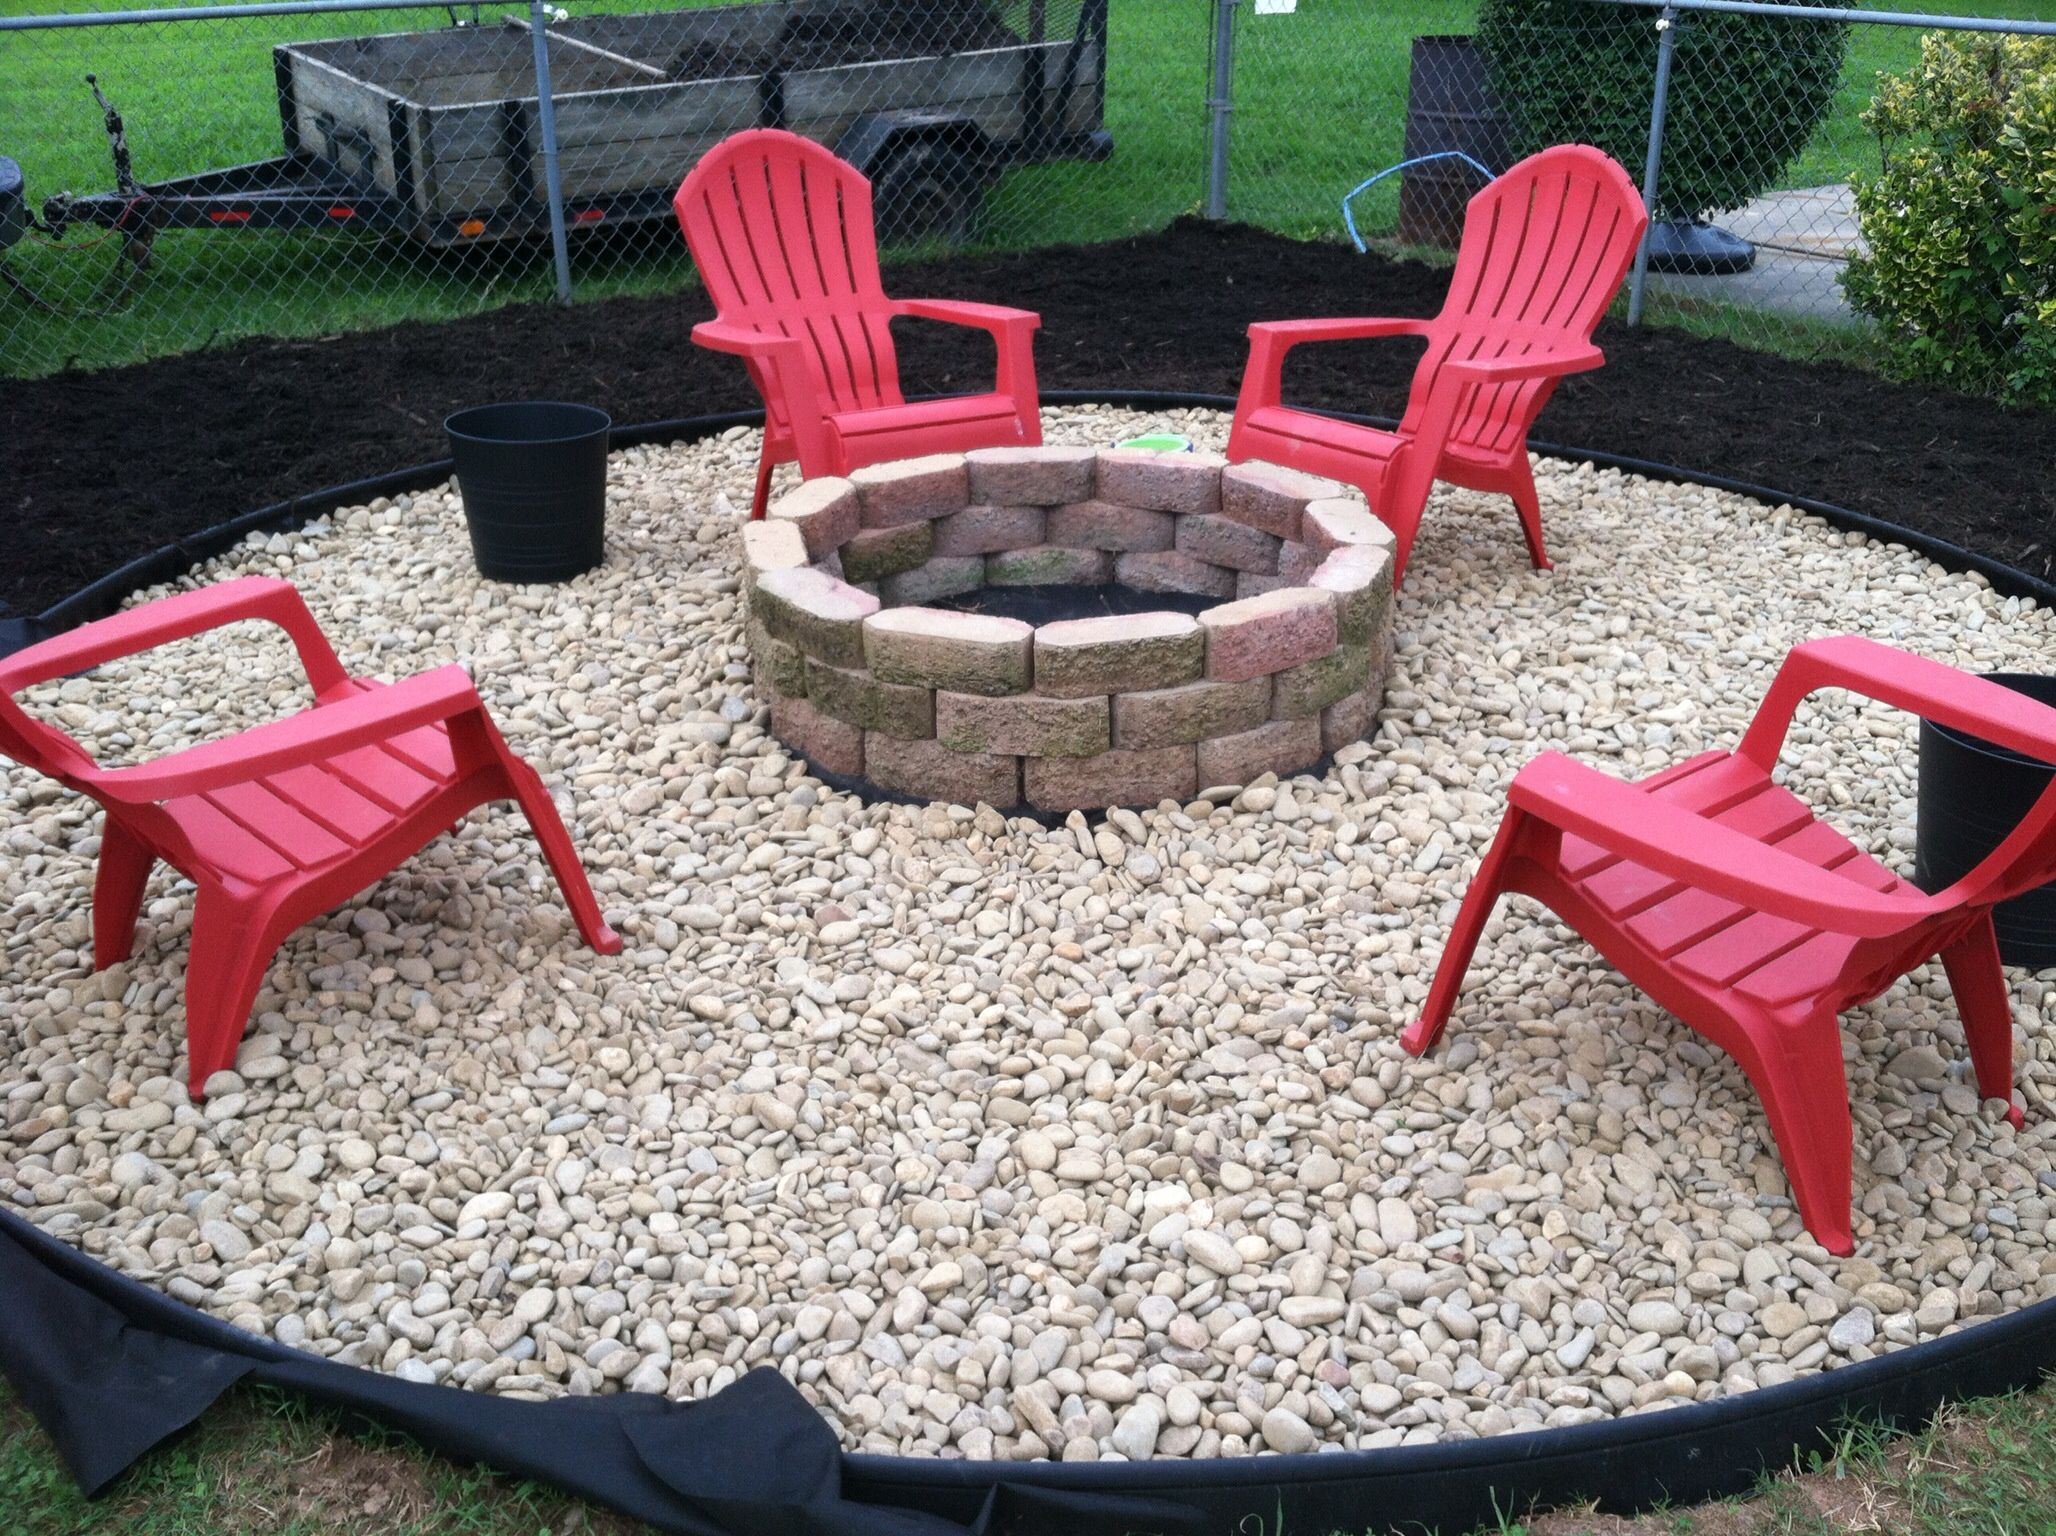 Fire Pit And Adirondack Chairs Vintage Wooden Folding Modern Plastic For Your Outdoor Seating